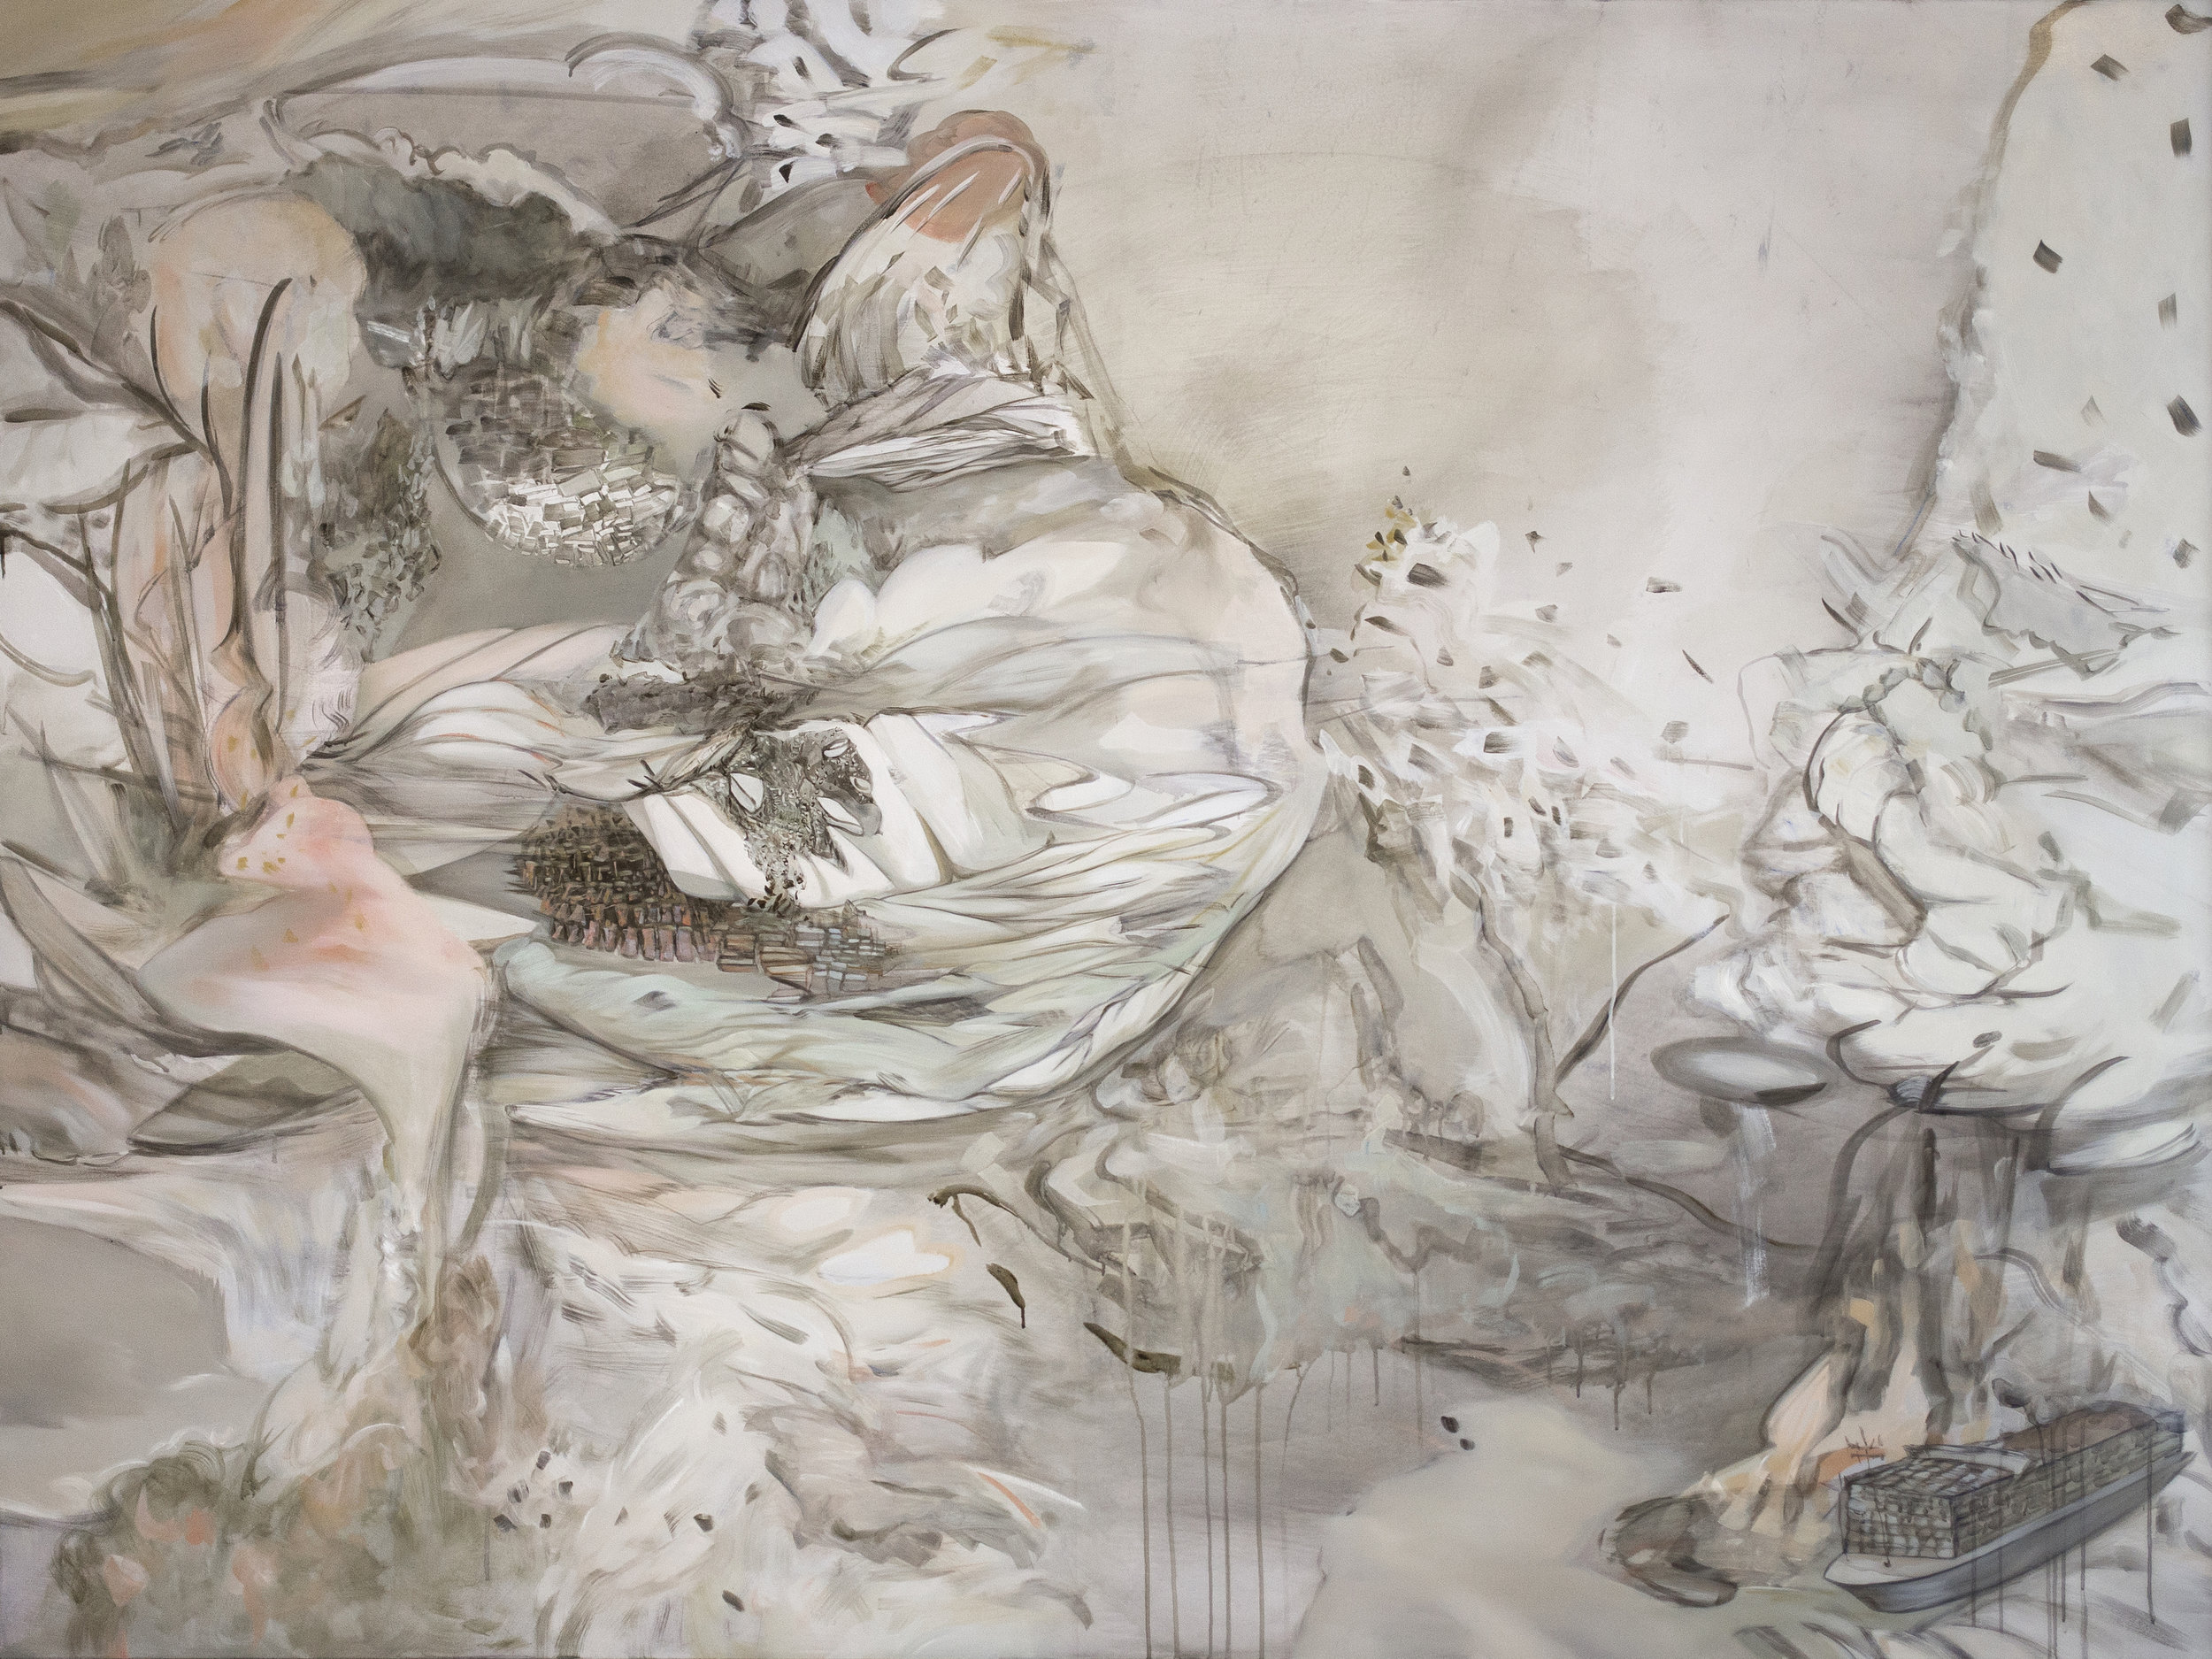 SHANSHUI SERIES NO. 2 PASSAGE, 2018  water-mixable oil on canvas  200 x 150 cm